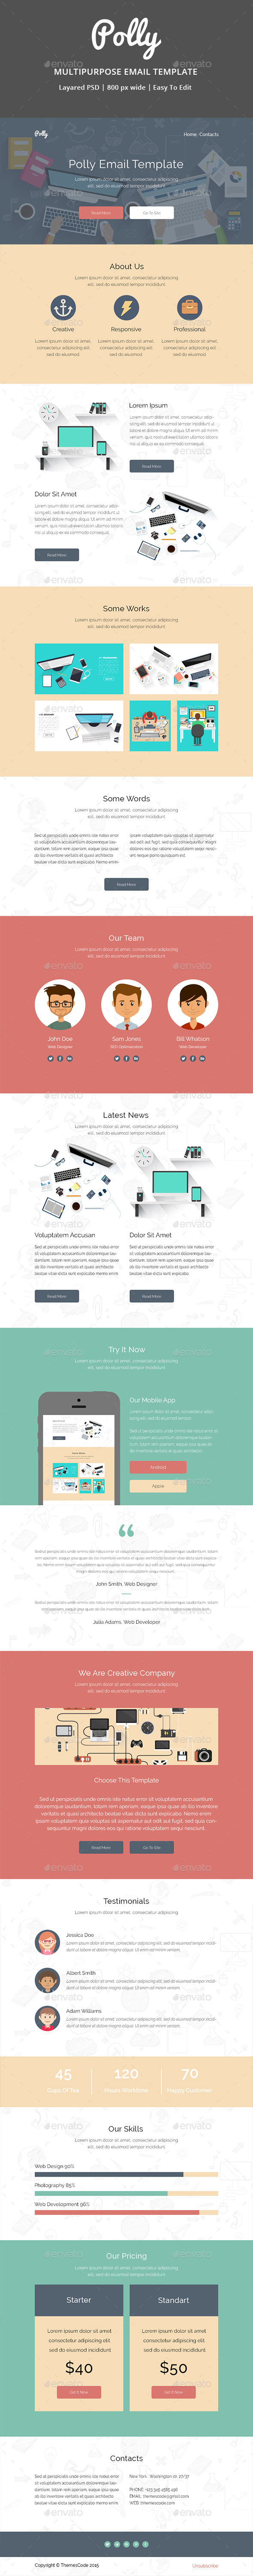 Polly - E-newsletters Web Elements